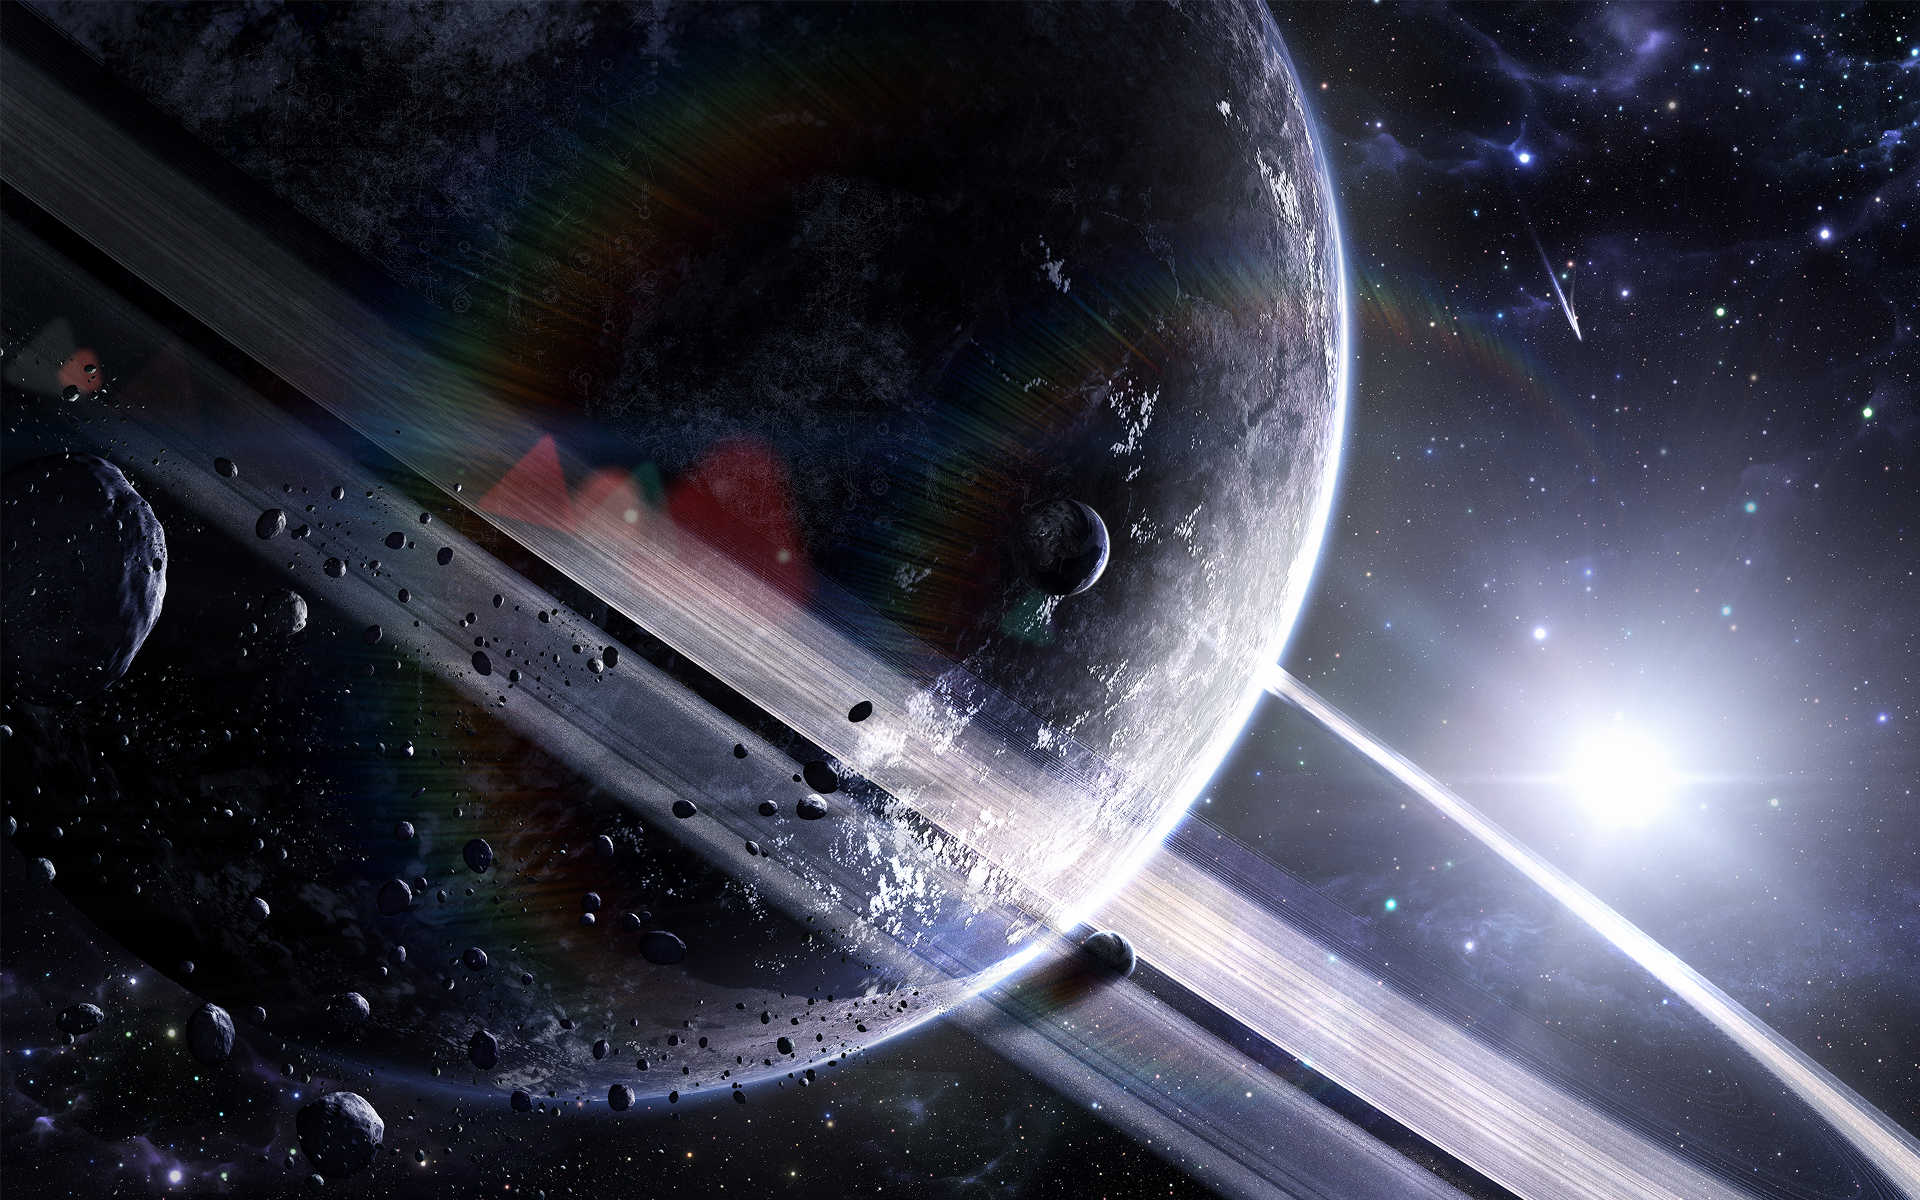 Space Hd Wallpapers 1080P wallpaper - 567538